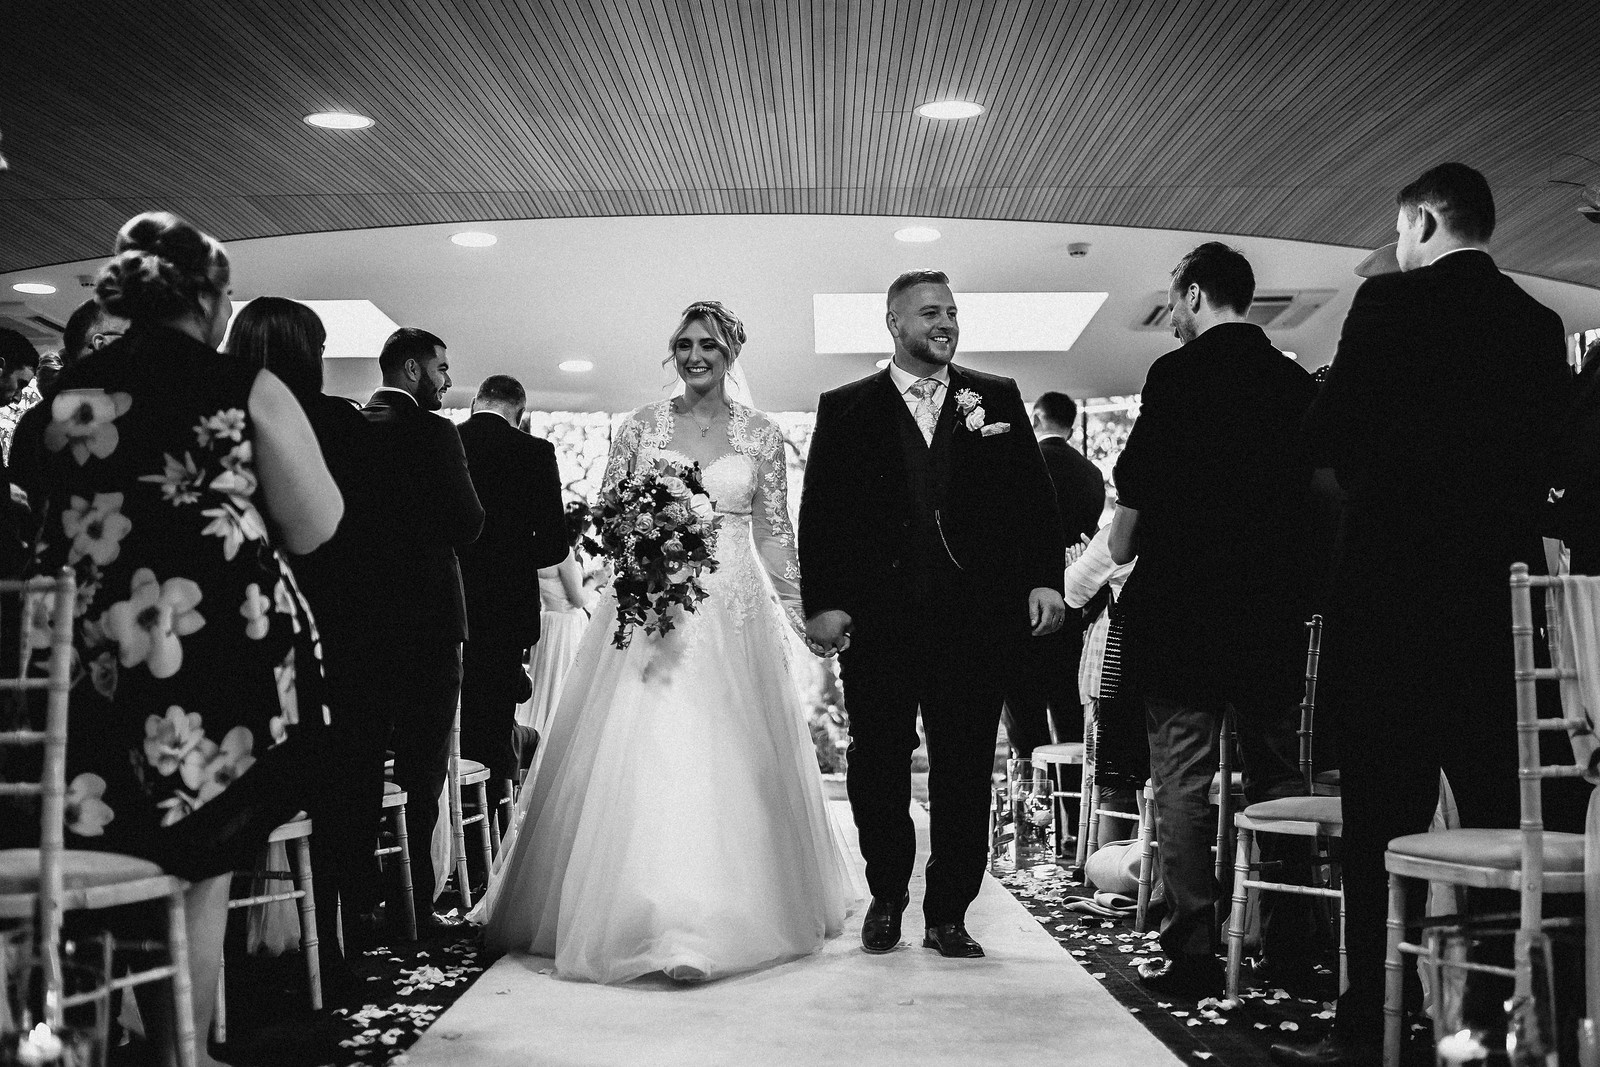 Bride and Groom full of smiles walk down the aisle together